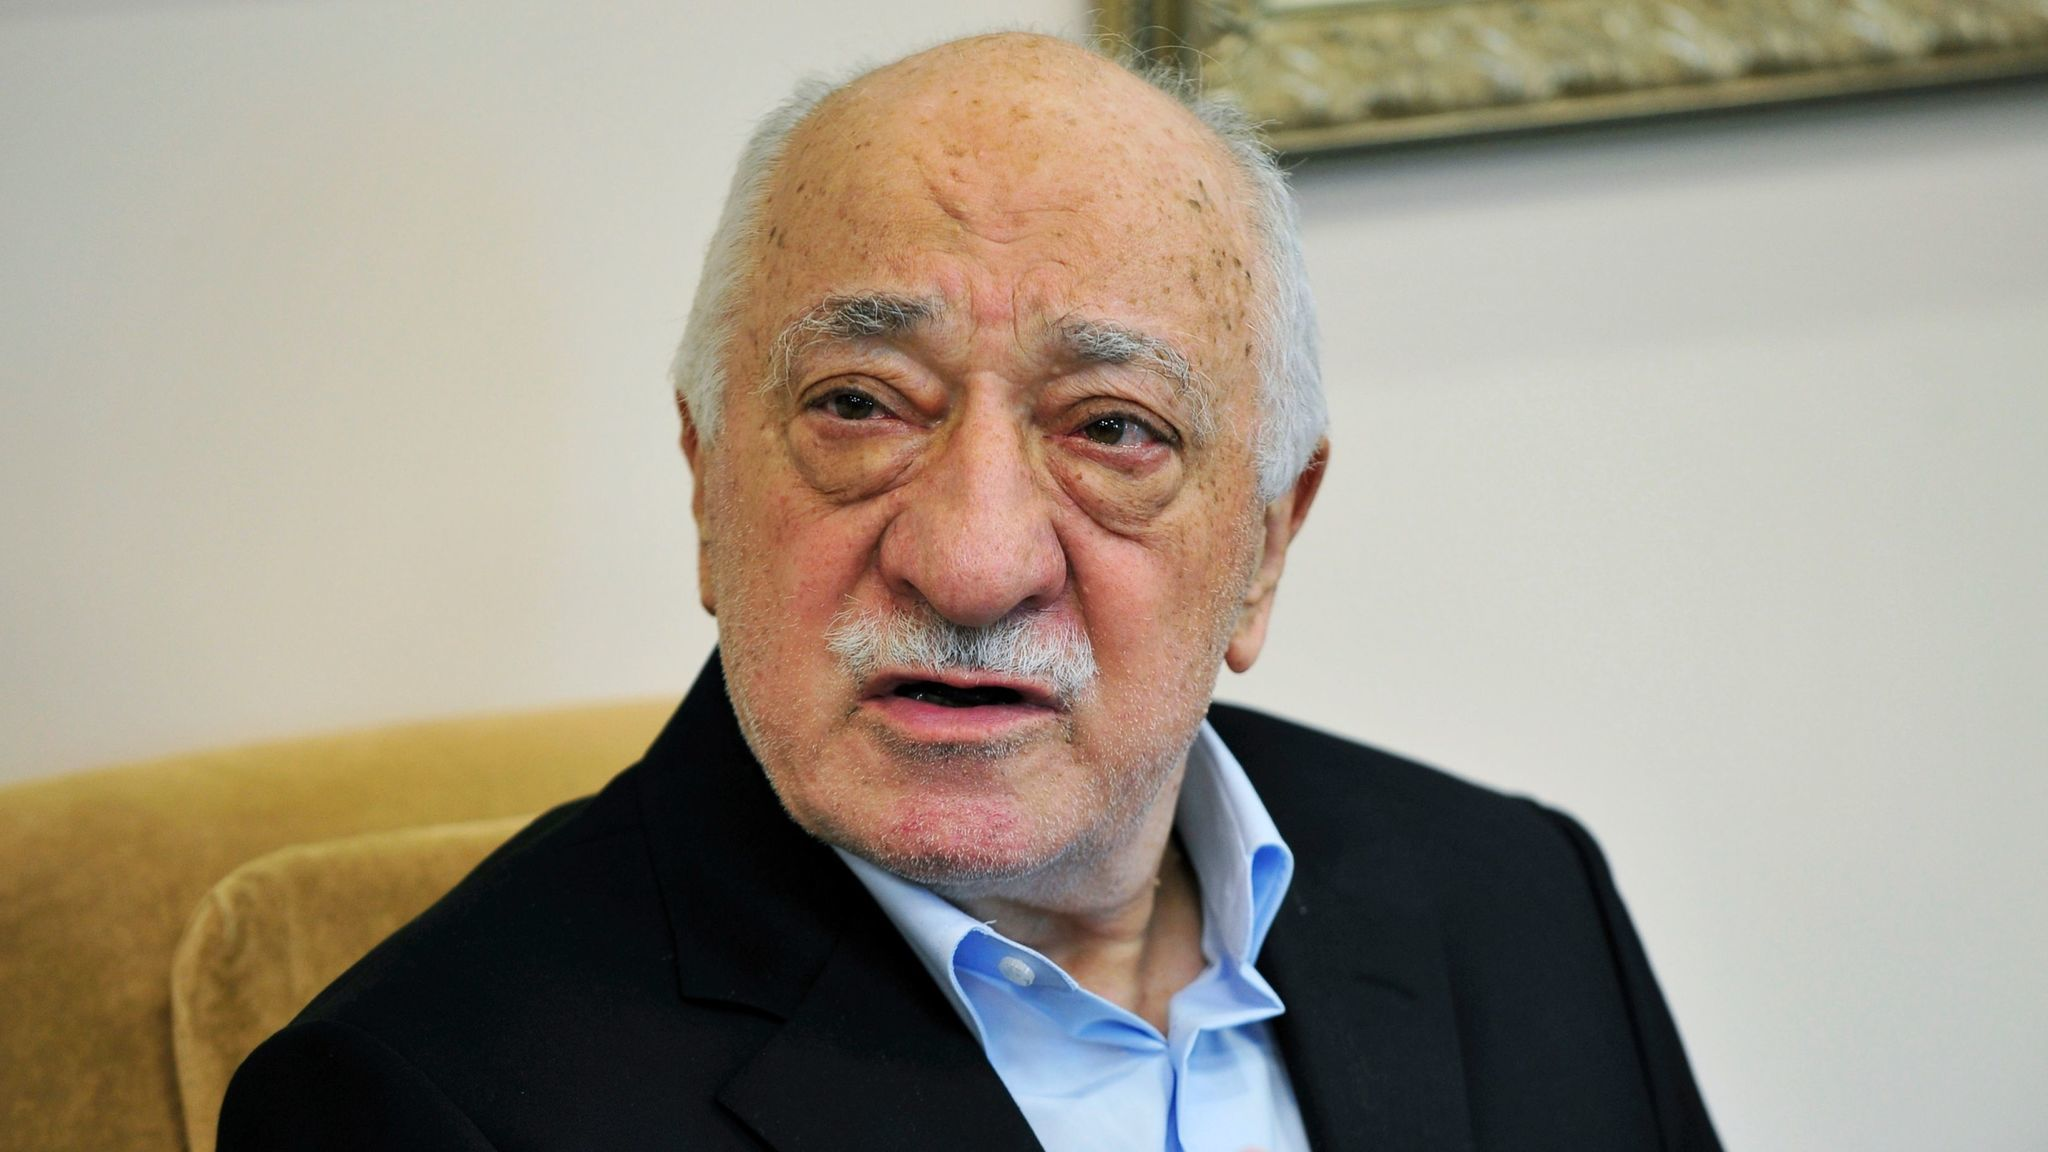 Cleric Fethullah Gulen speaks to members of the media at his compound in Saylorsburg, Pennsylvania on July 17, 2016